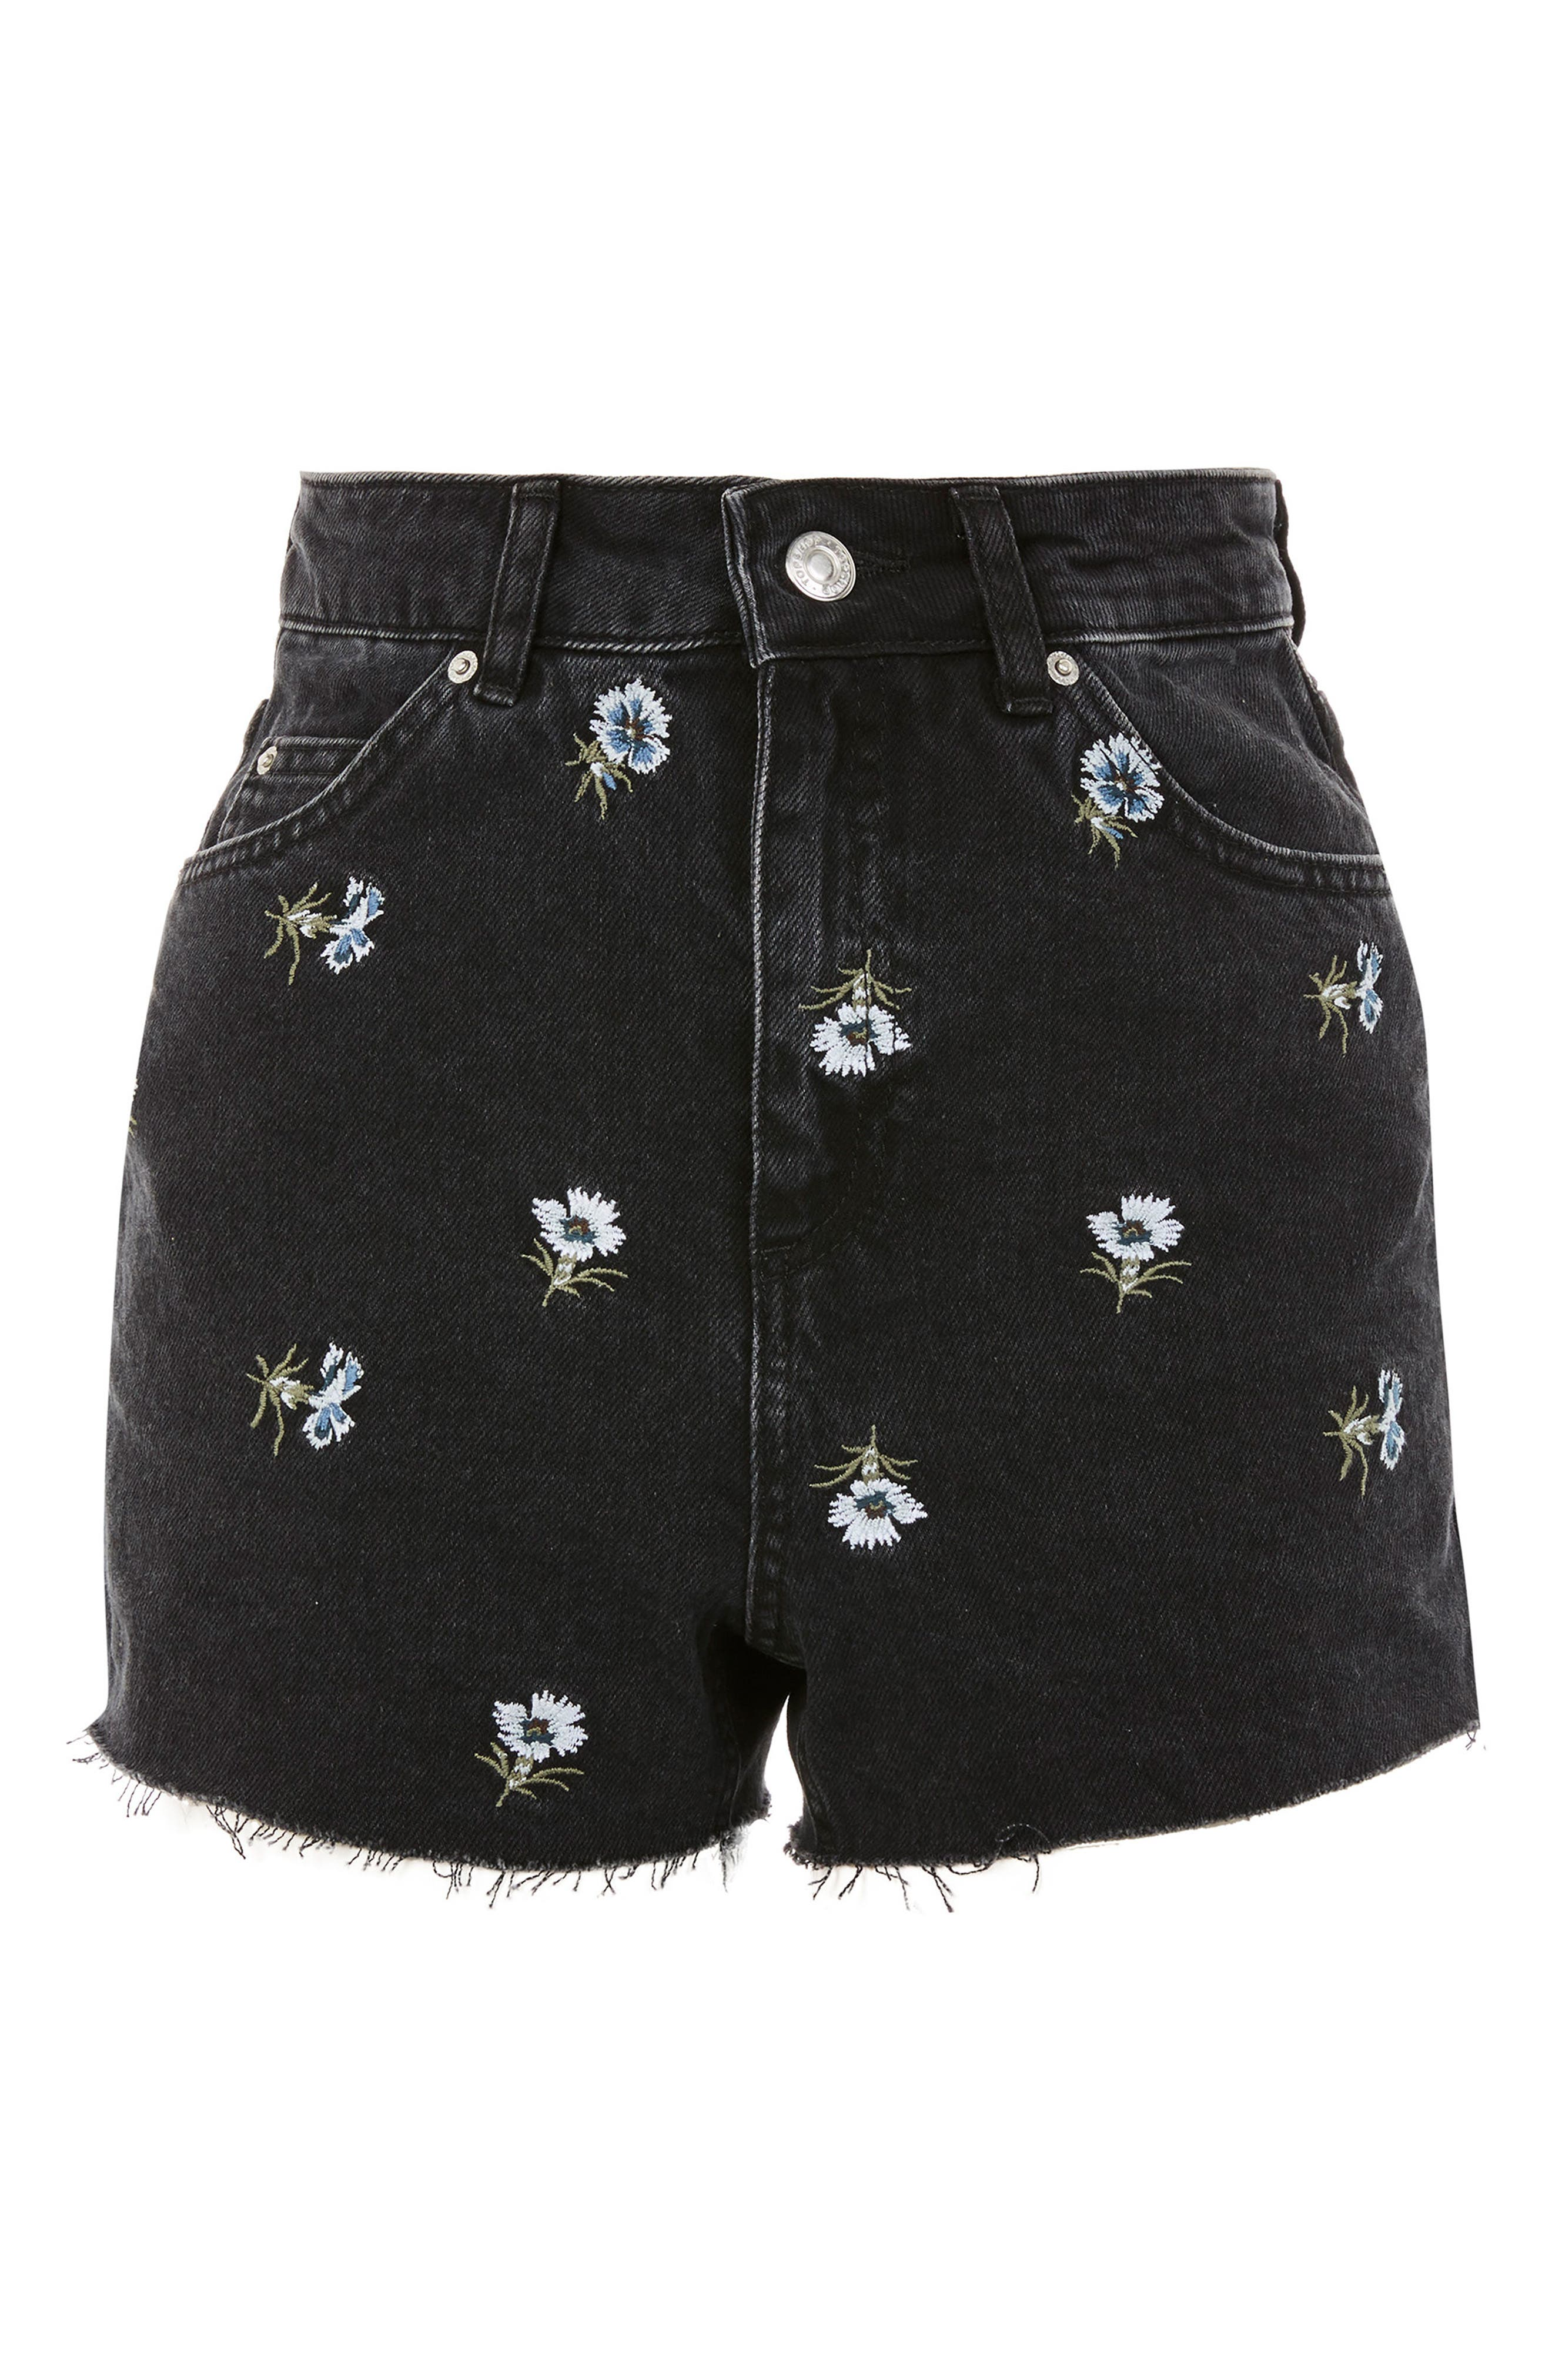 Floral Embroidered Mom Shorts,                             Alternate thumbnail 3, color,                             003